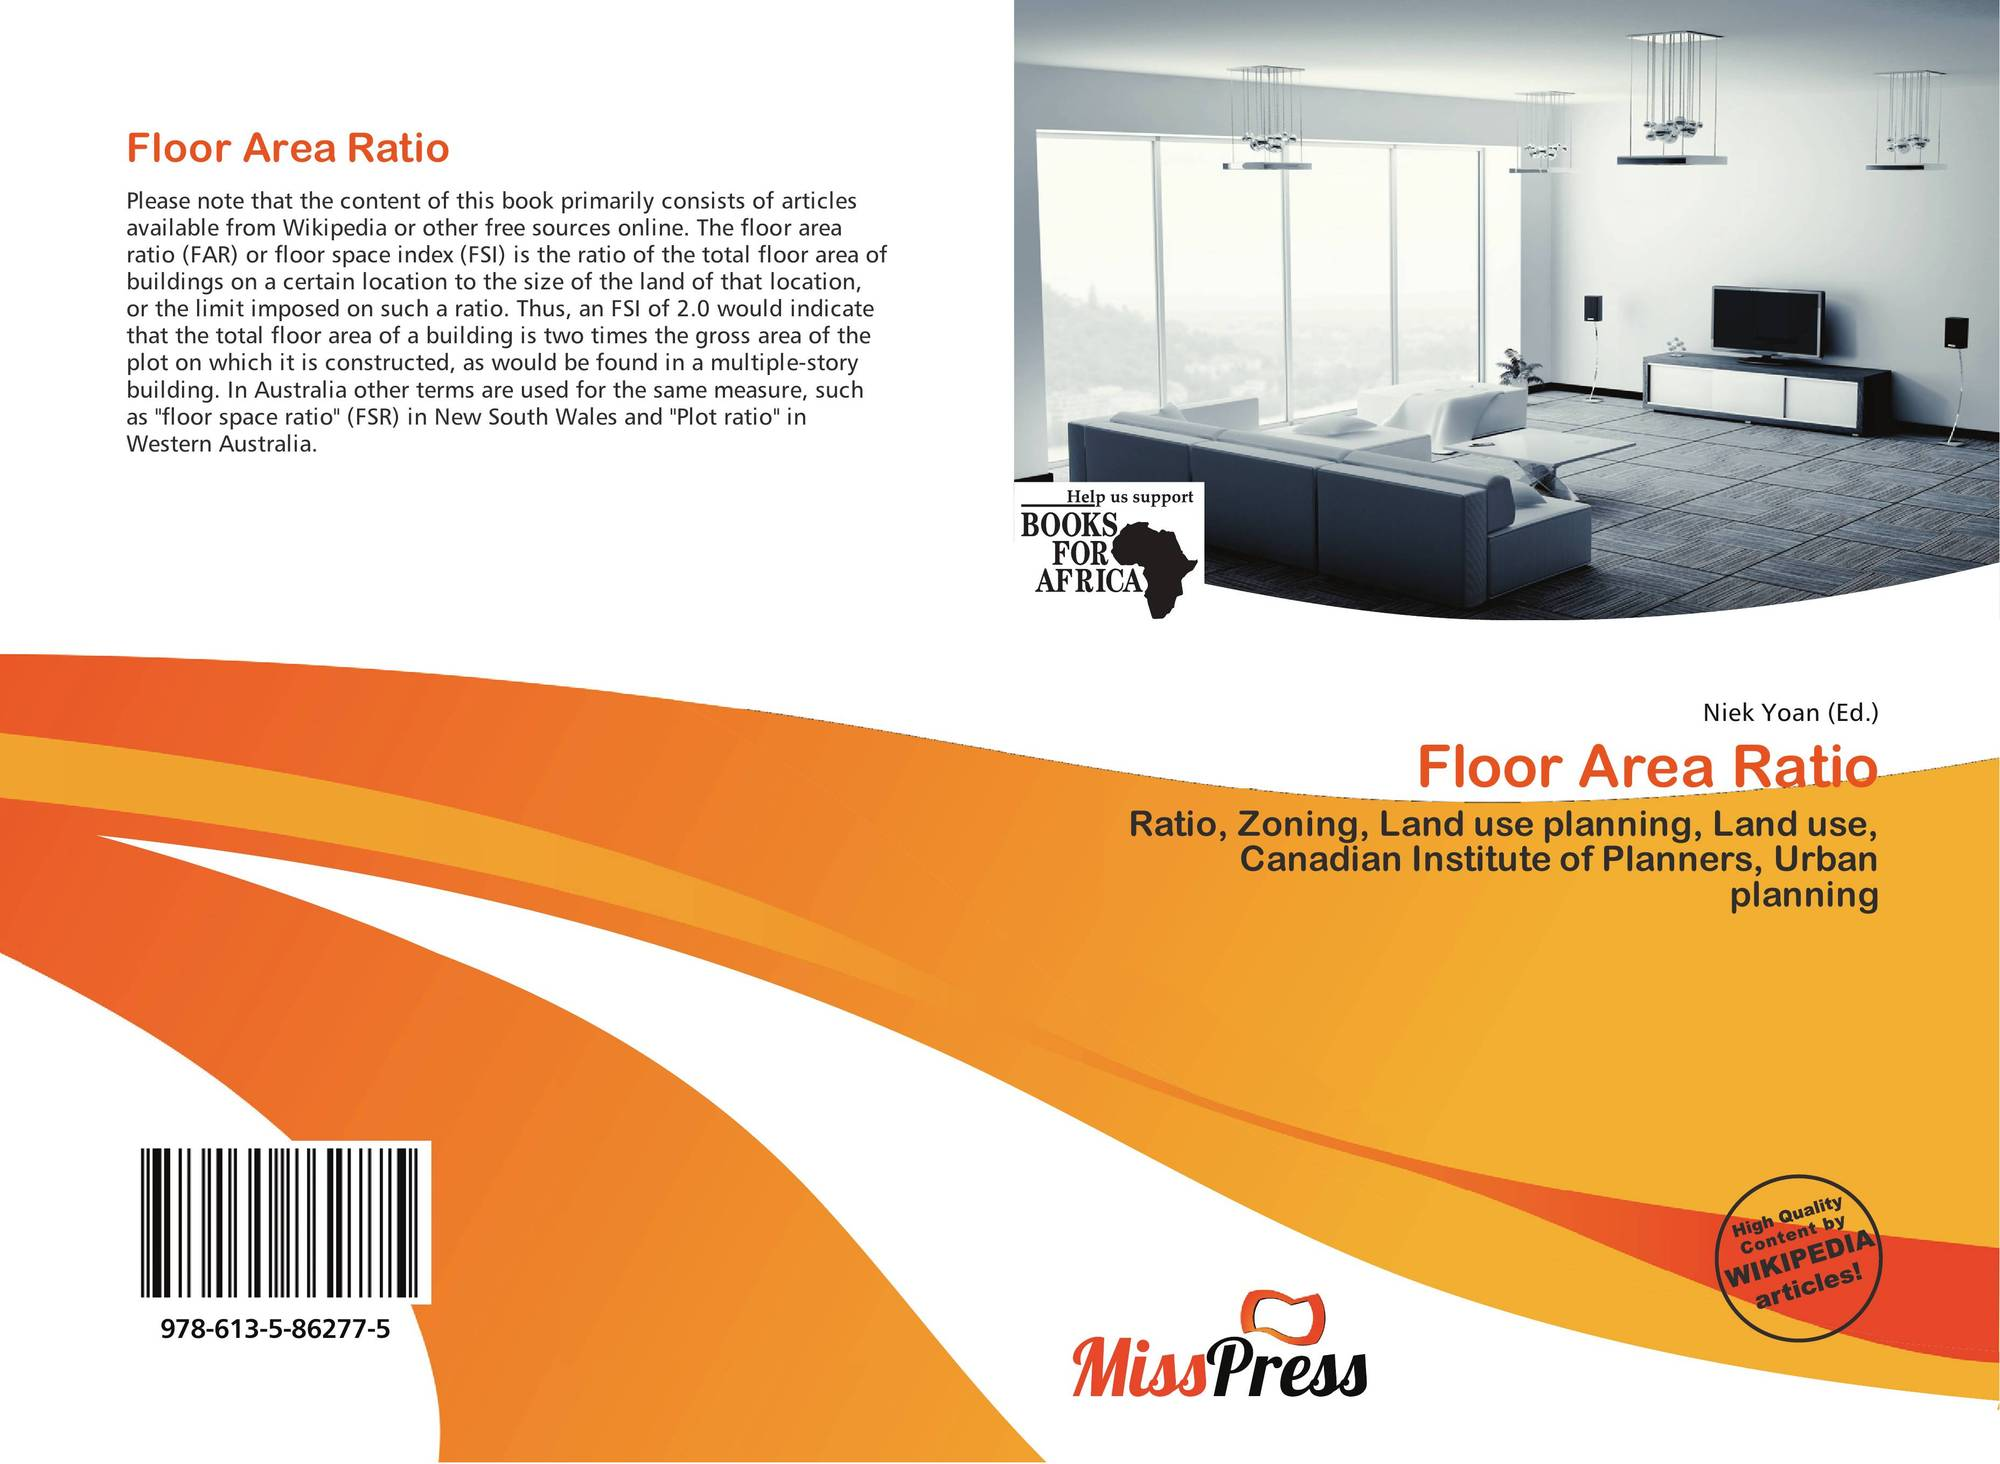 Floor Area Ratio, 978-613-5-86277-5